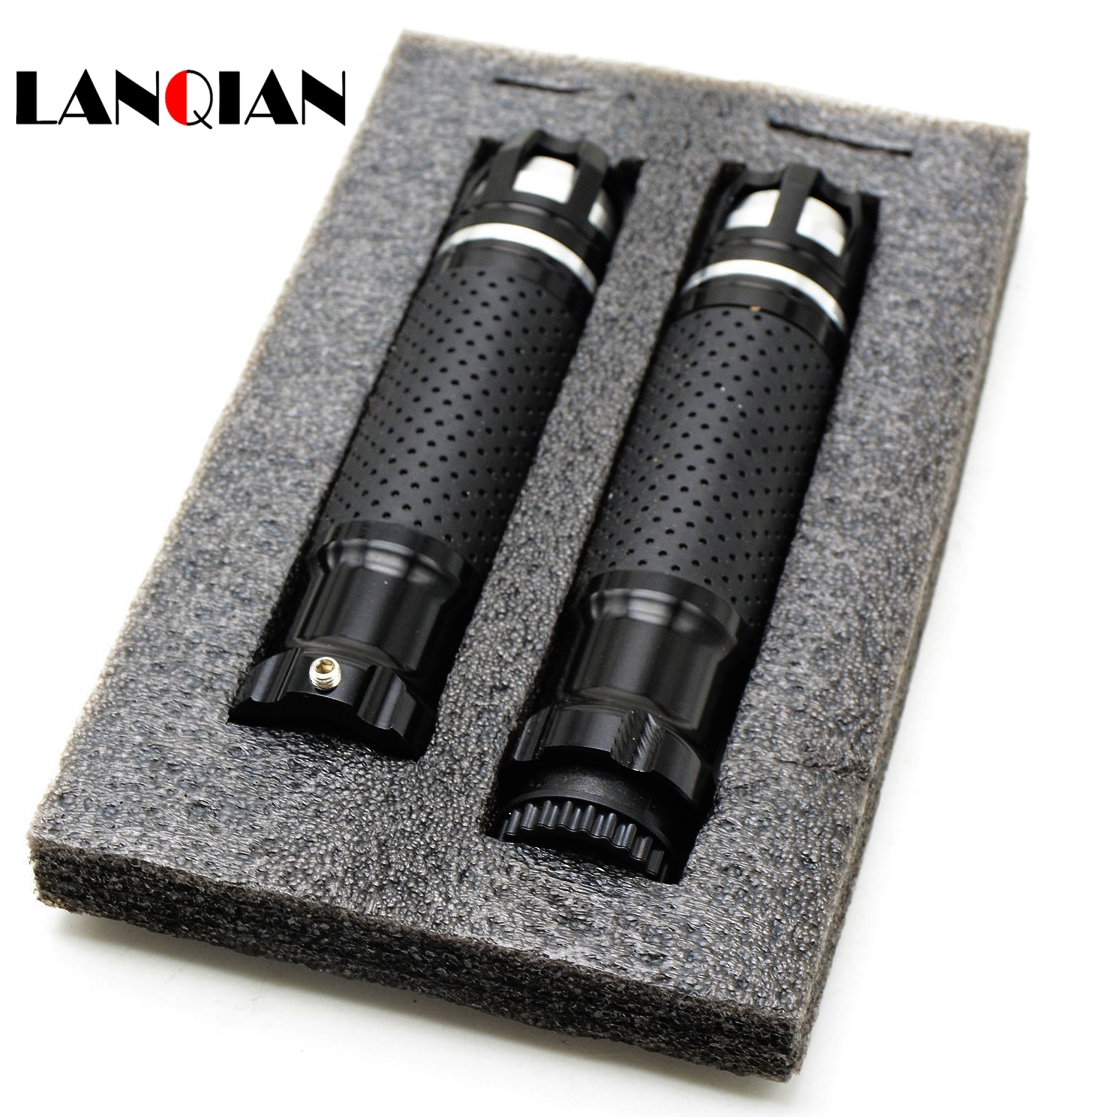 Universal 22mm Motorcycle Handlebar Brake clutch Hand Grips for SUZUKI GSX-S750 GSX-S GSX 650F 750 1000 1250 1400